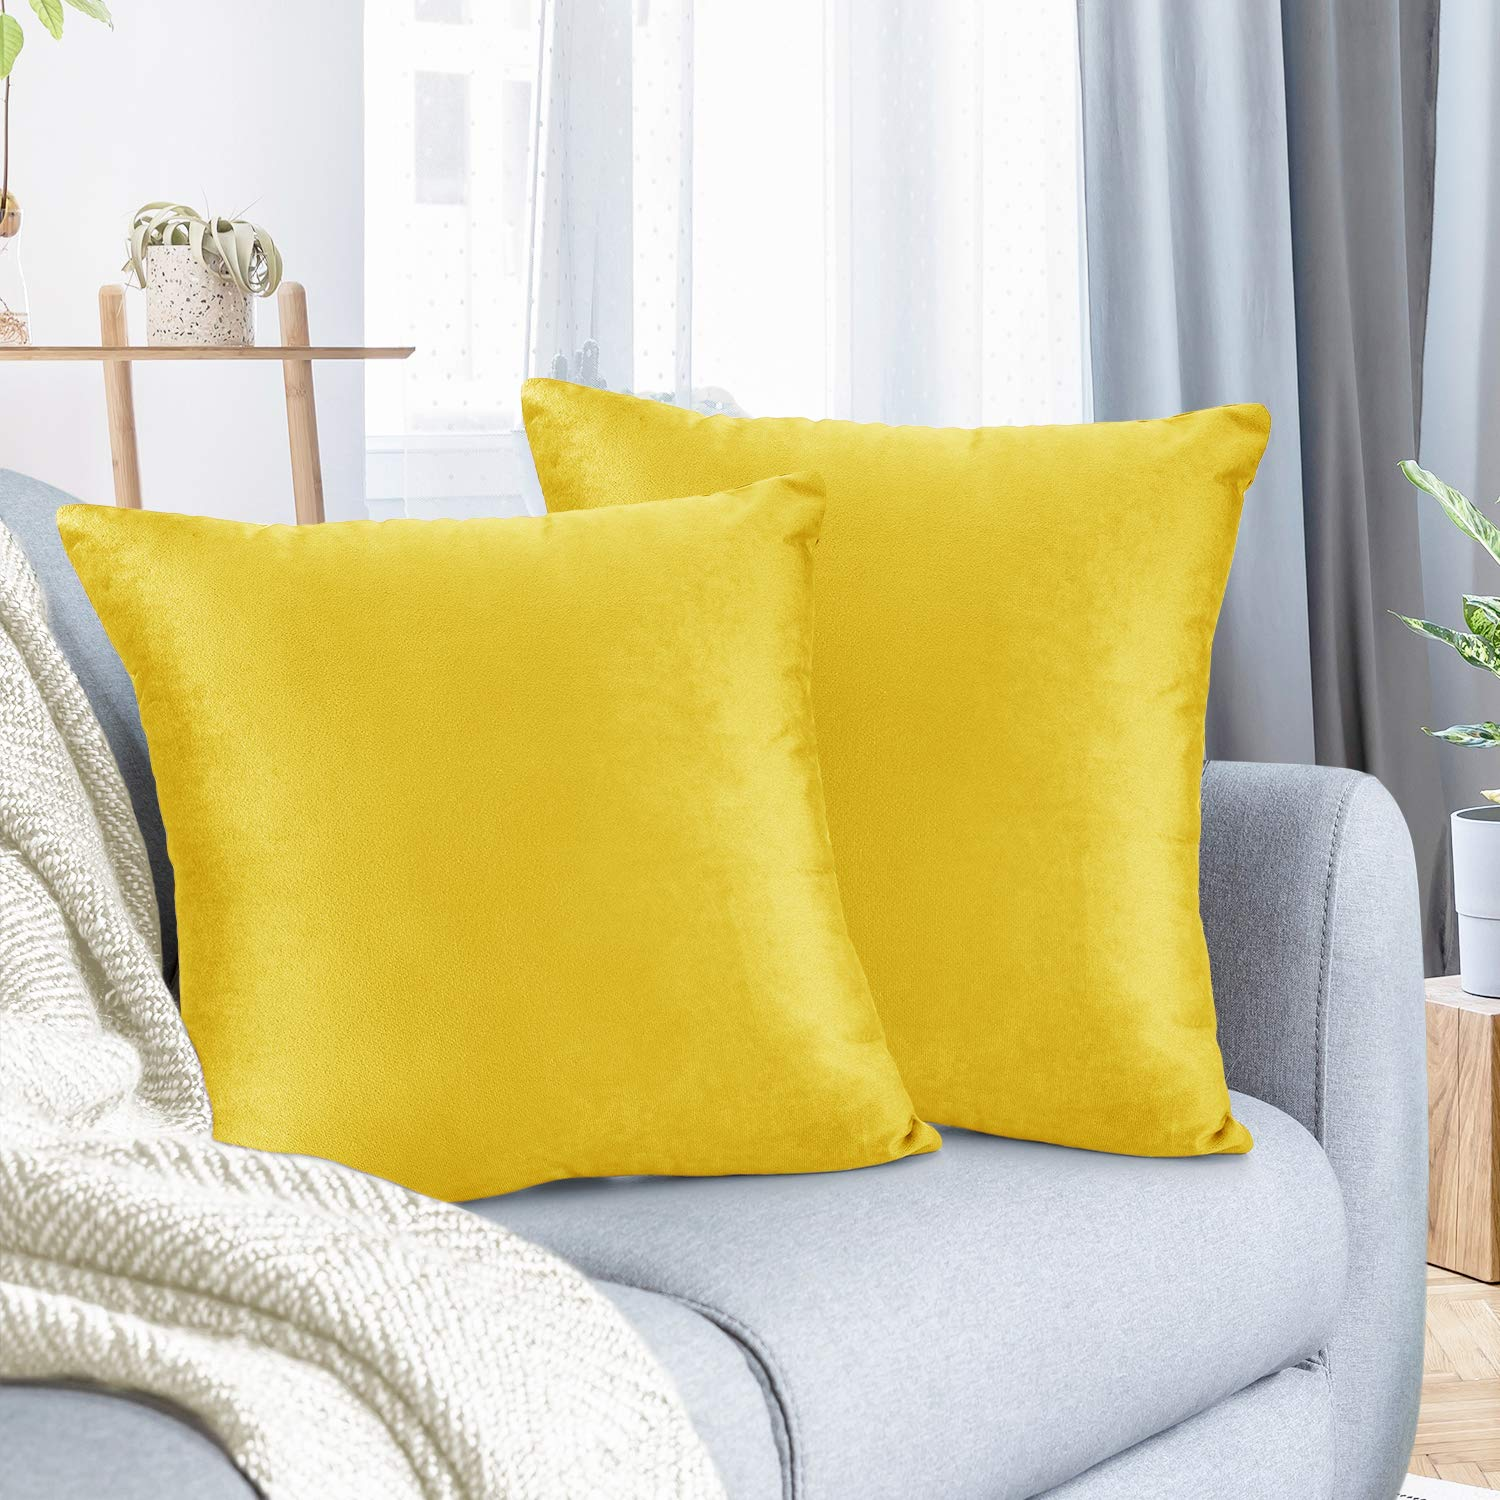 """Nestl Bedding Throw Pillow Cover 22"""" x 22"""" Soft Square Decorative Throw Pillow Covers Cozy Velvet Cushion Case for Sofa Couch Bedroom, Set of 2, Yellow"""